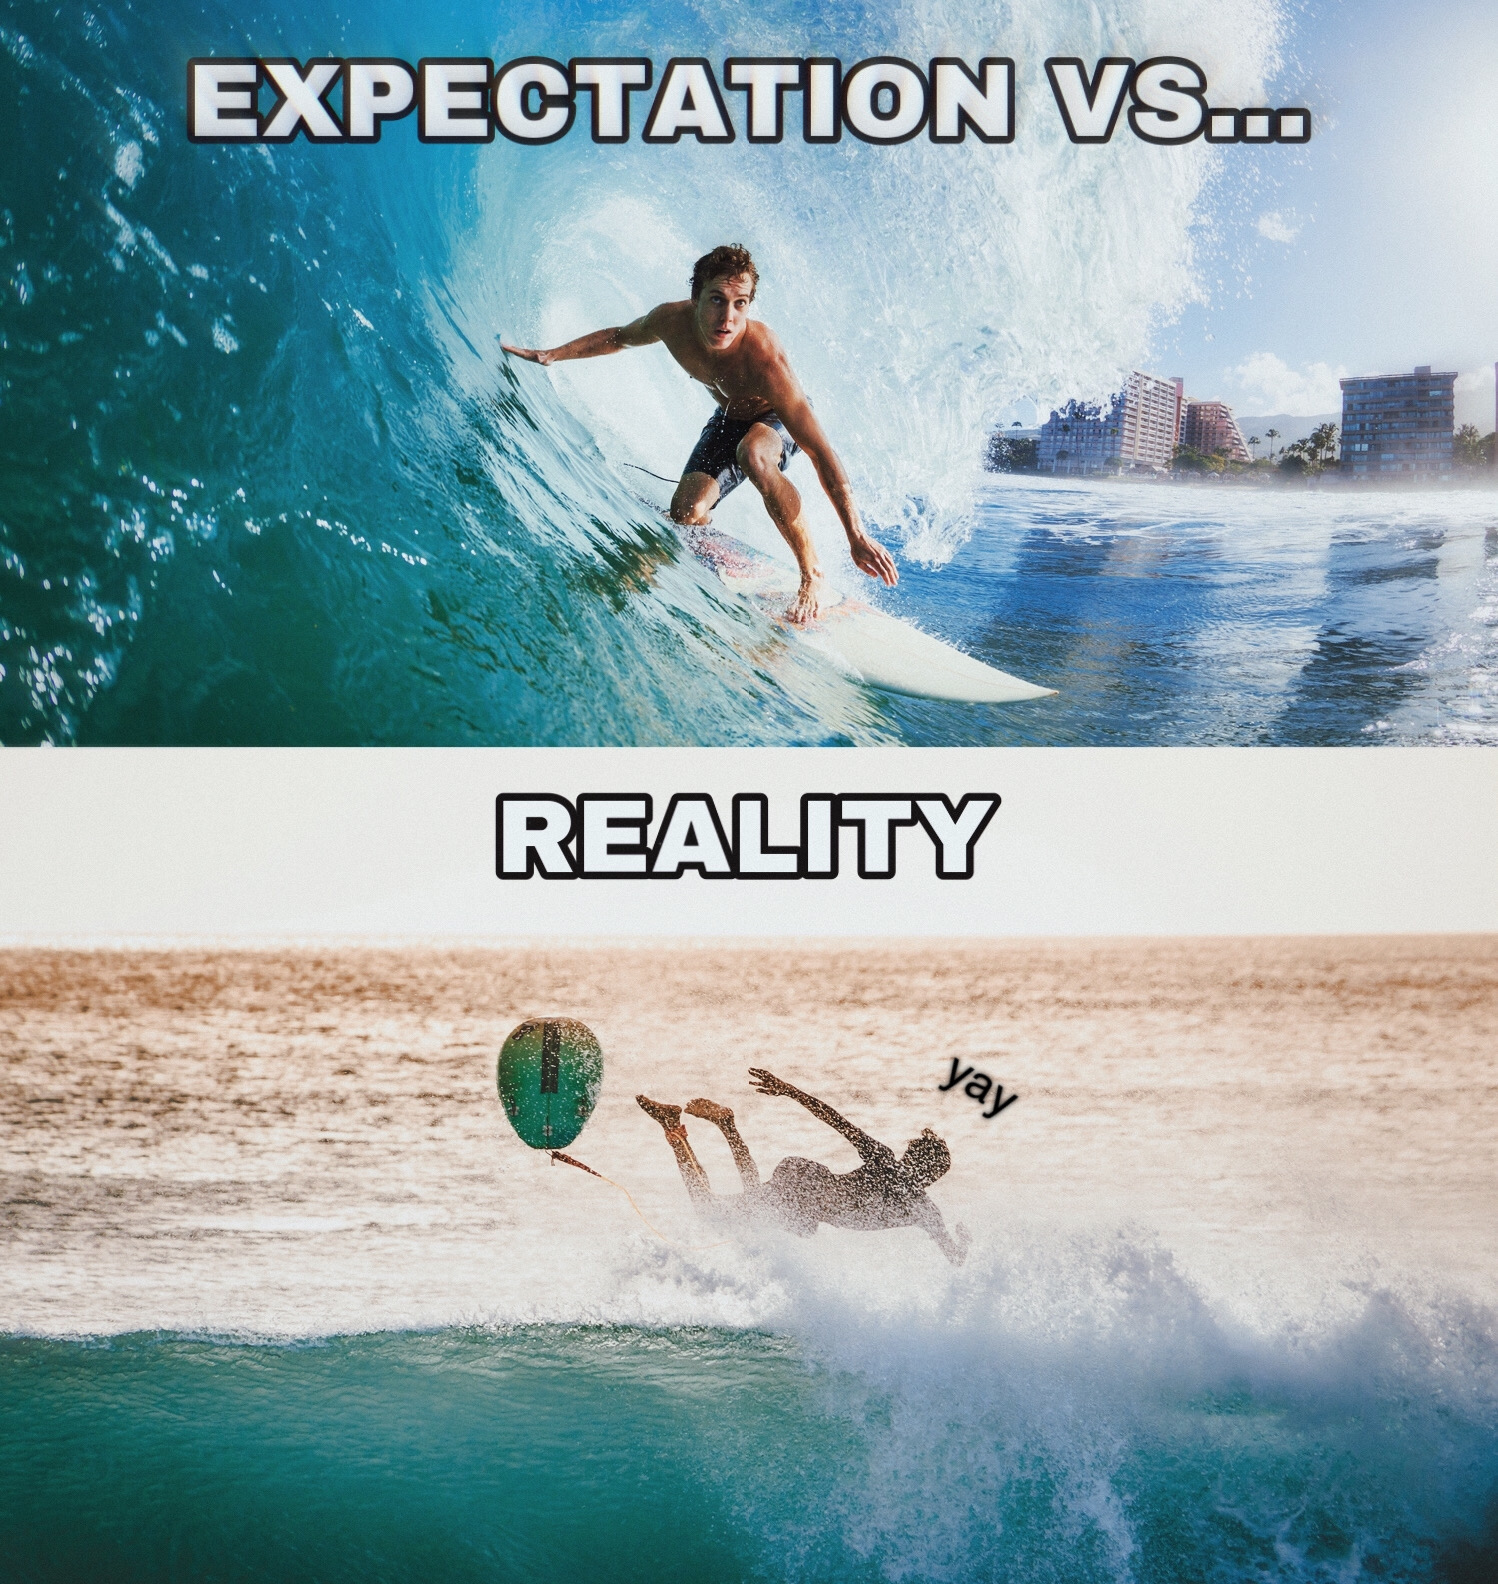 Expectation vs reality meme of a surfer at the beach made with meme maker tool